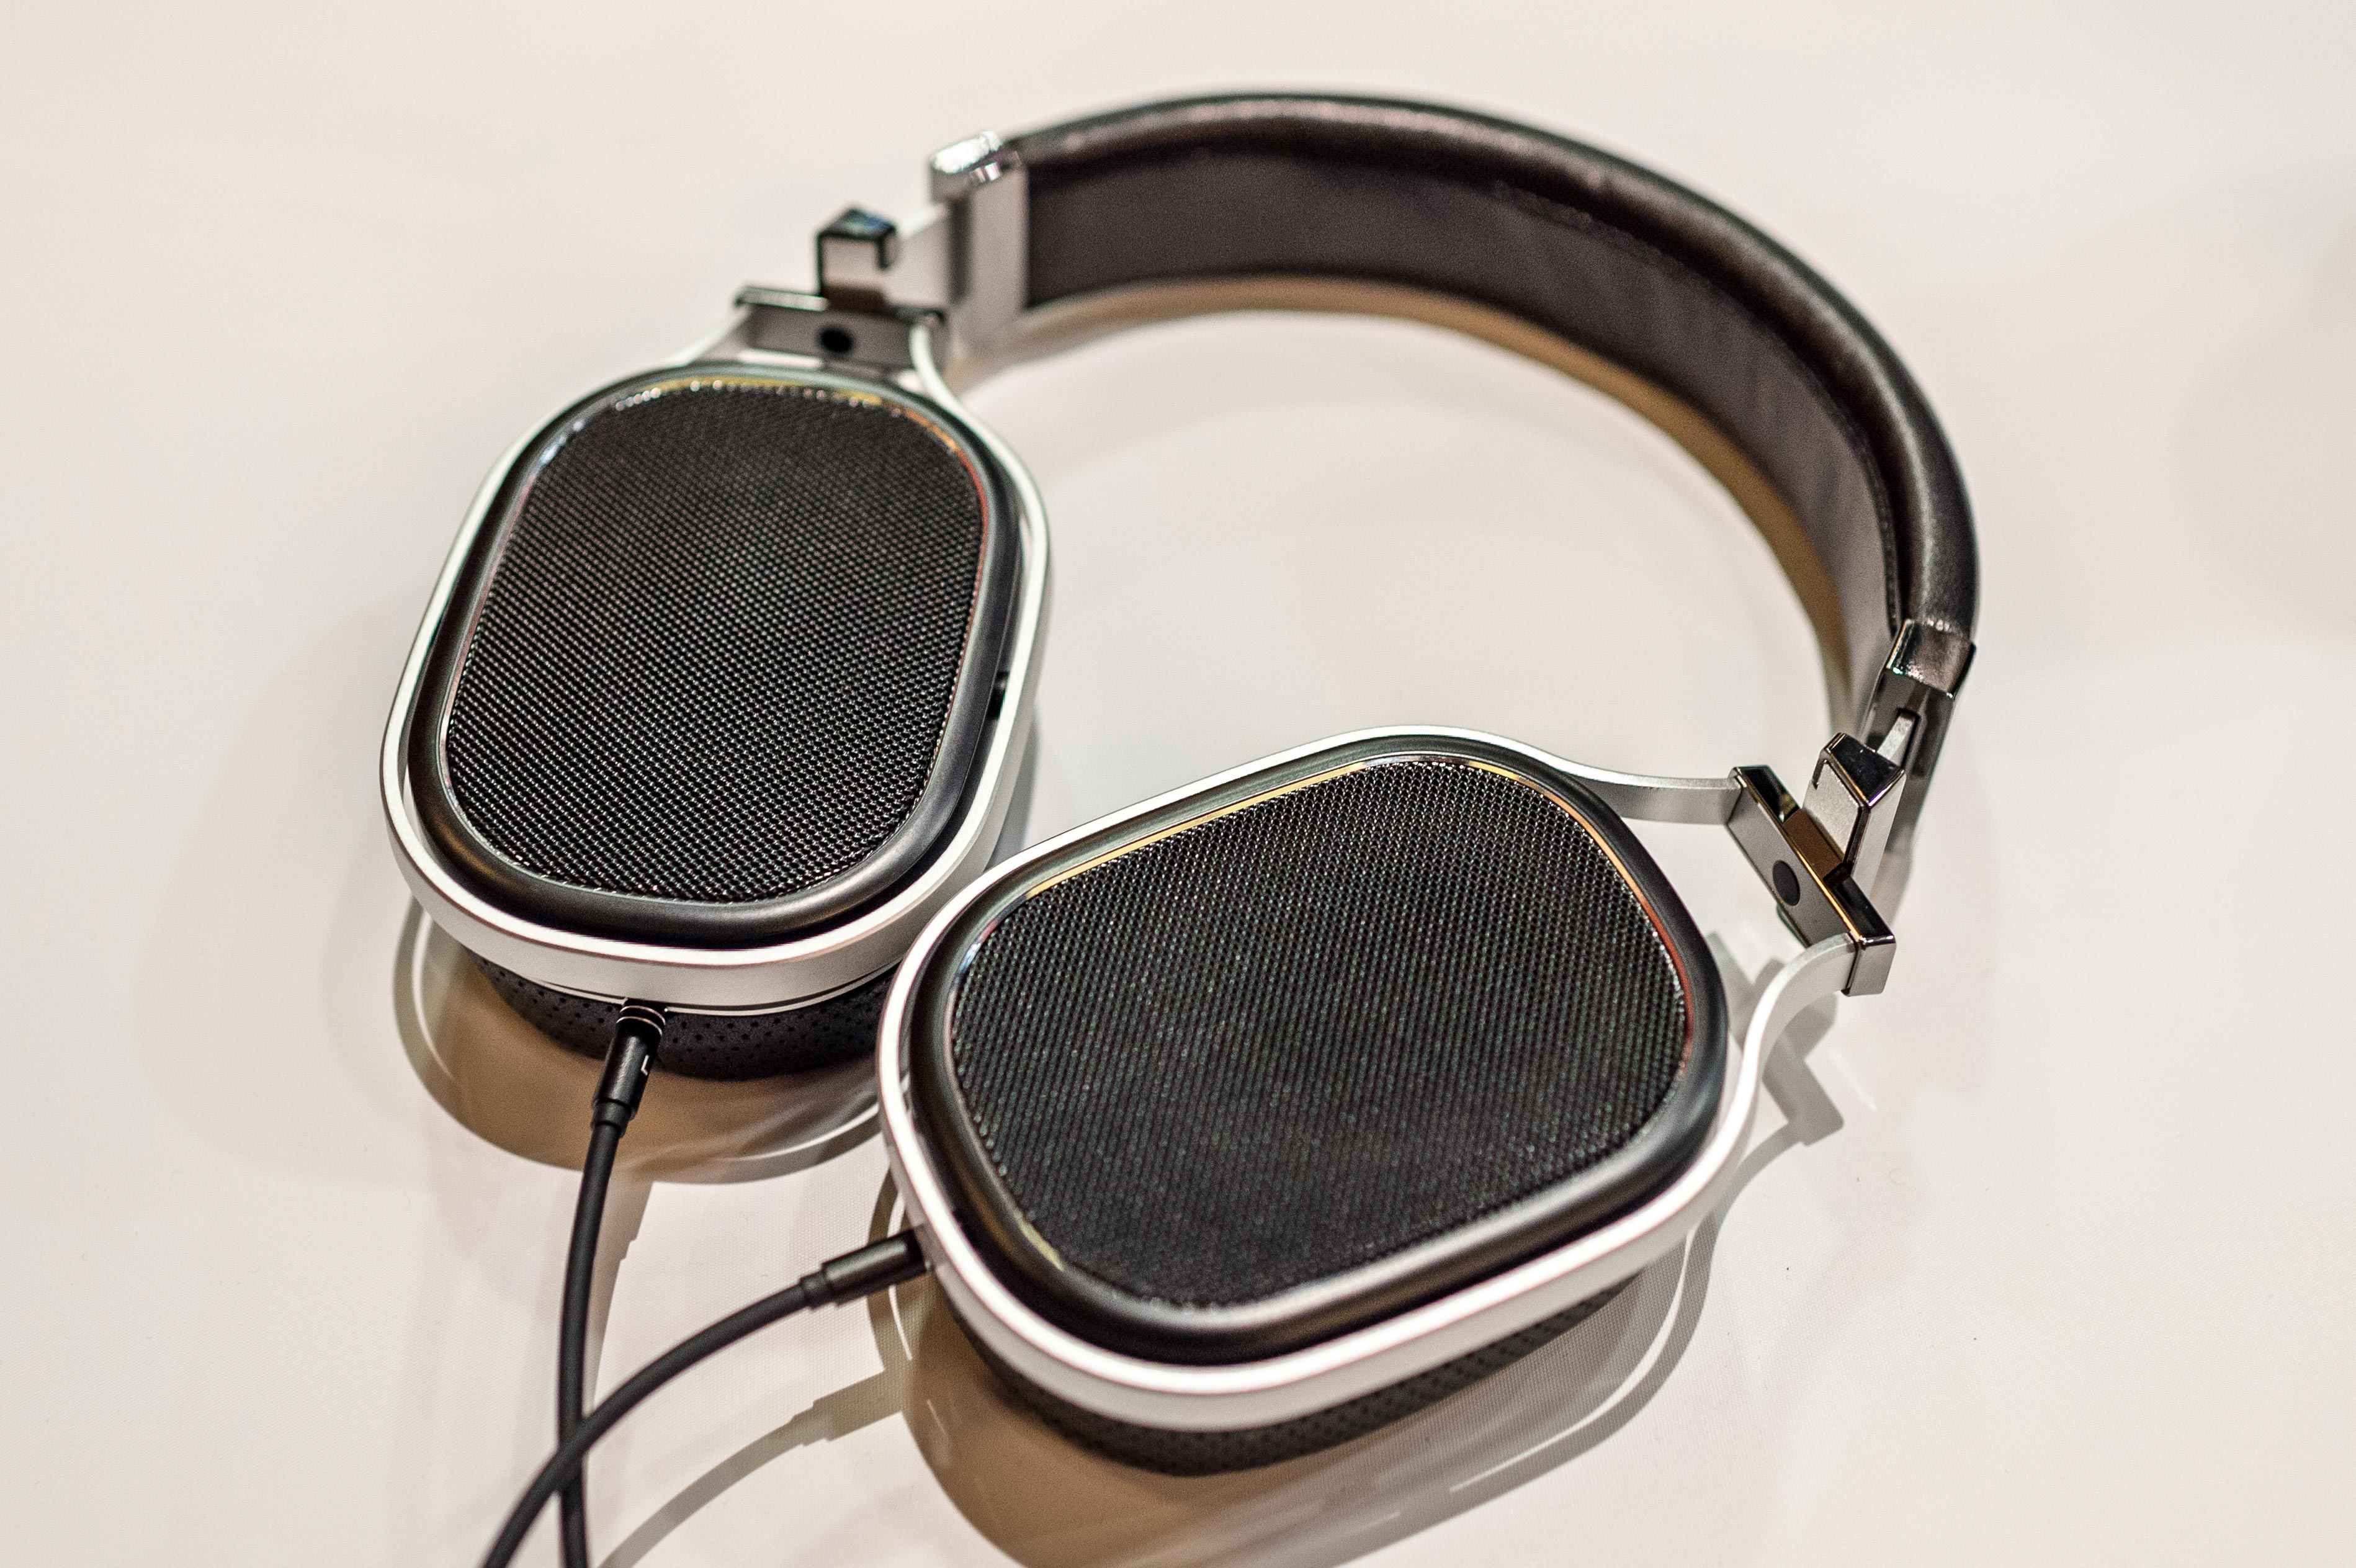 Oppo headphone prototype